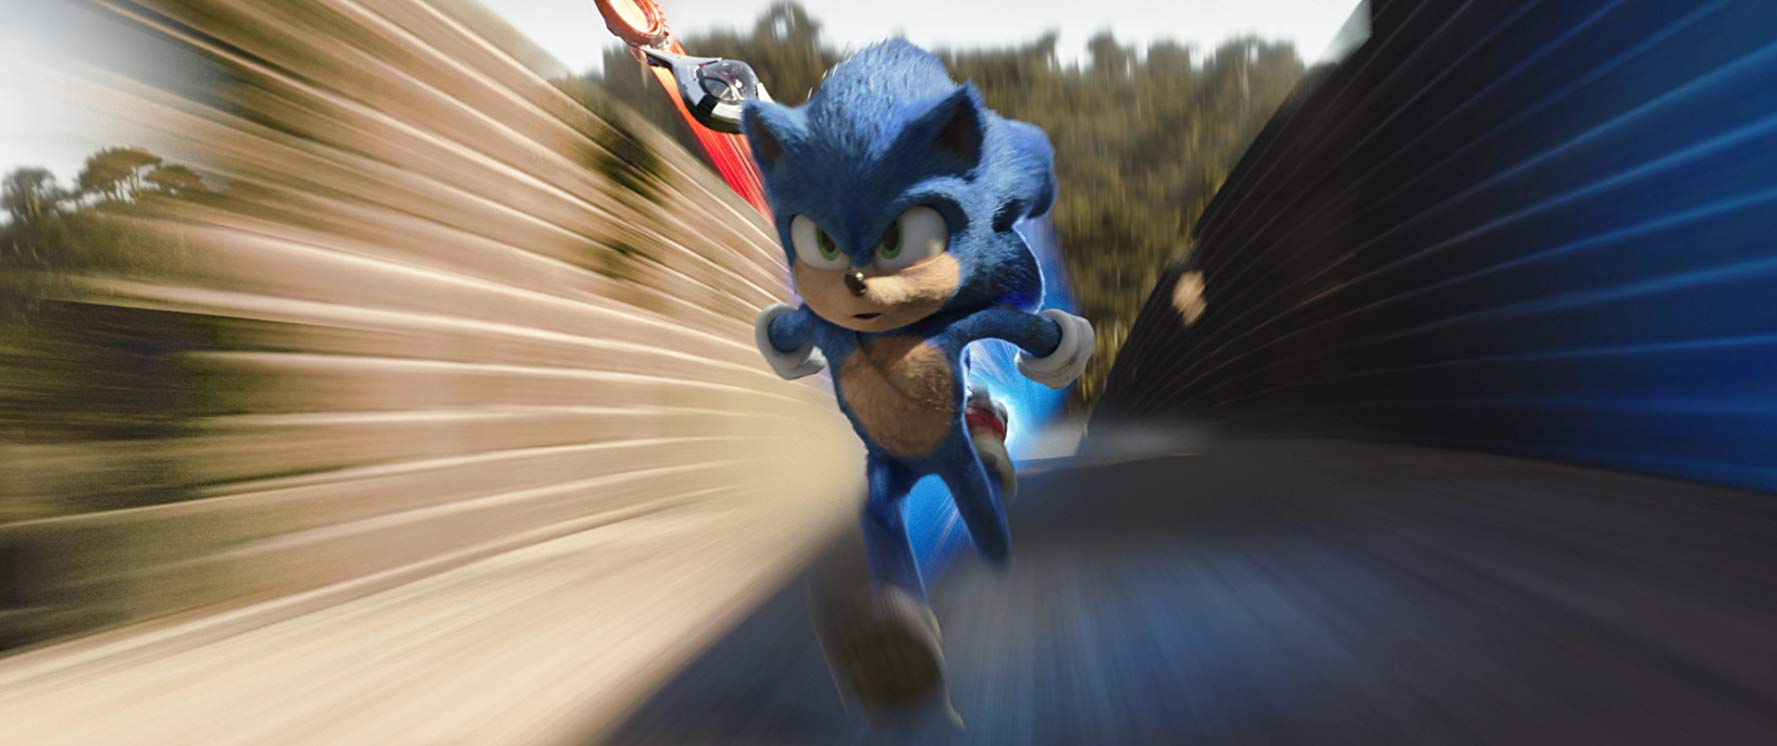 Is The 'Sonic The Hedgehog' Movie Any Good? Here's What The Reviews Say